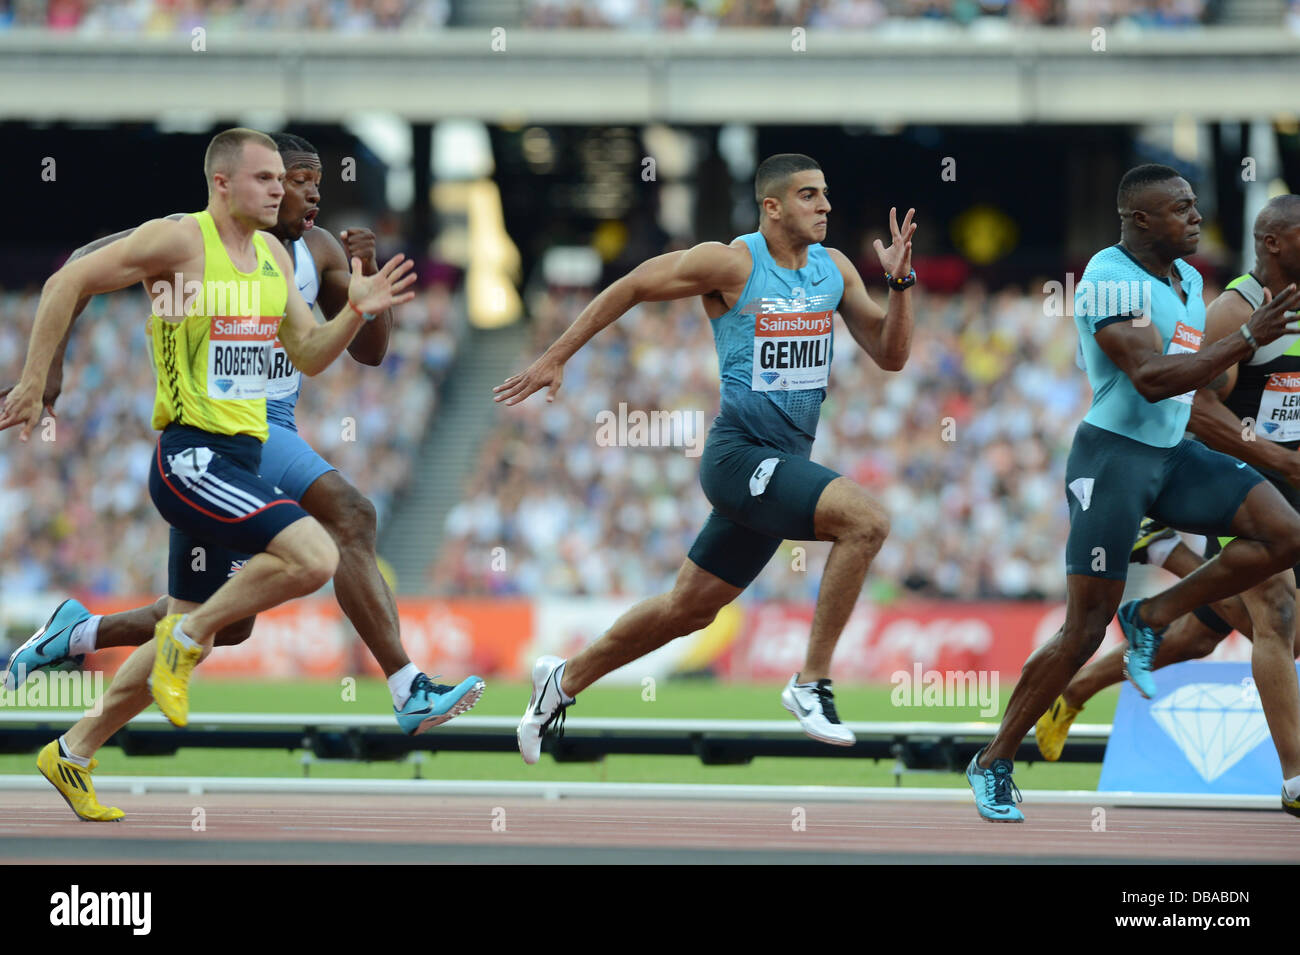 London, UK. 26th July, 2013. Adam Gemili races down Harry Aikines-Aryeetey and Mark Lewis-Francis in the men's - Stock Image